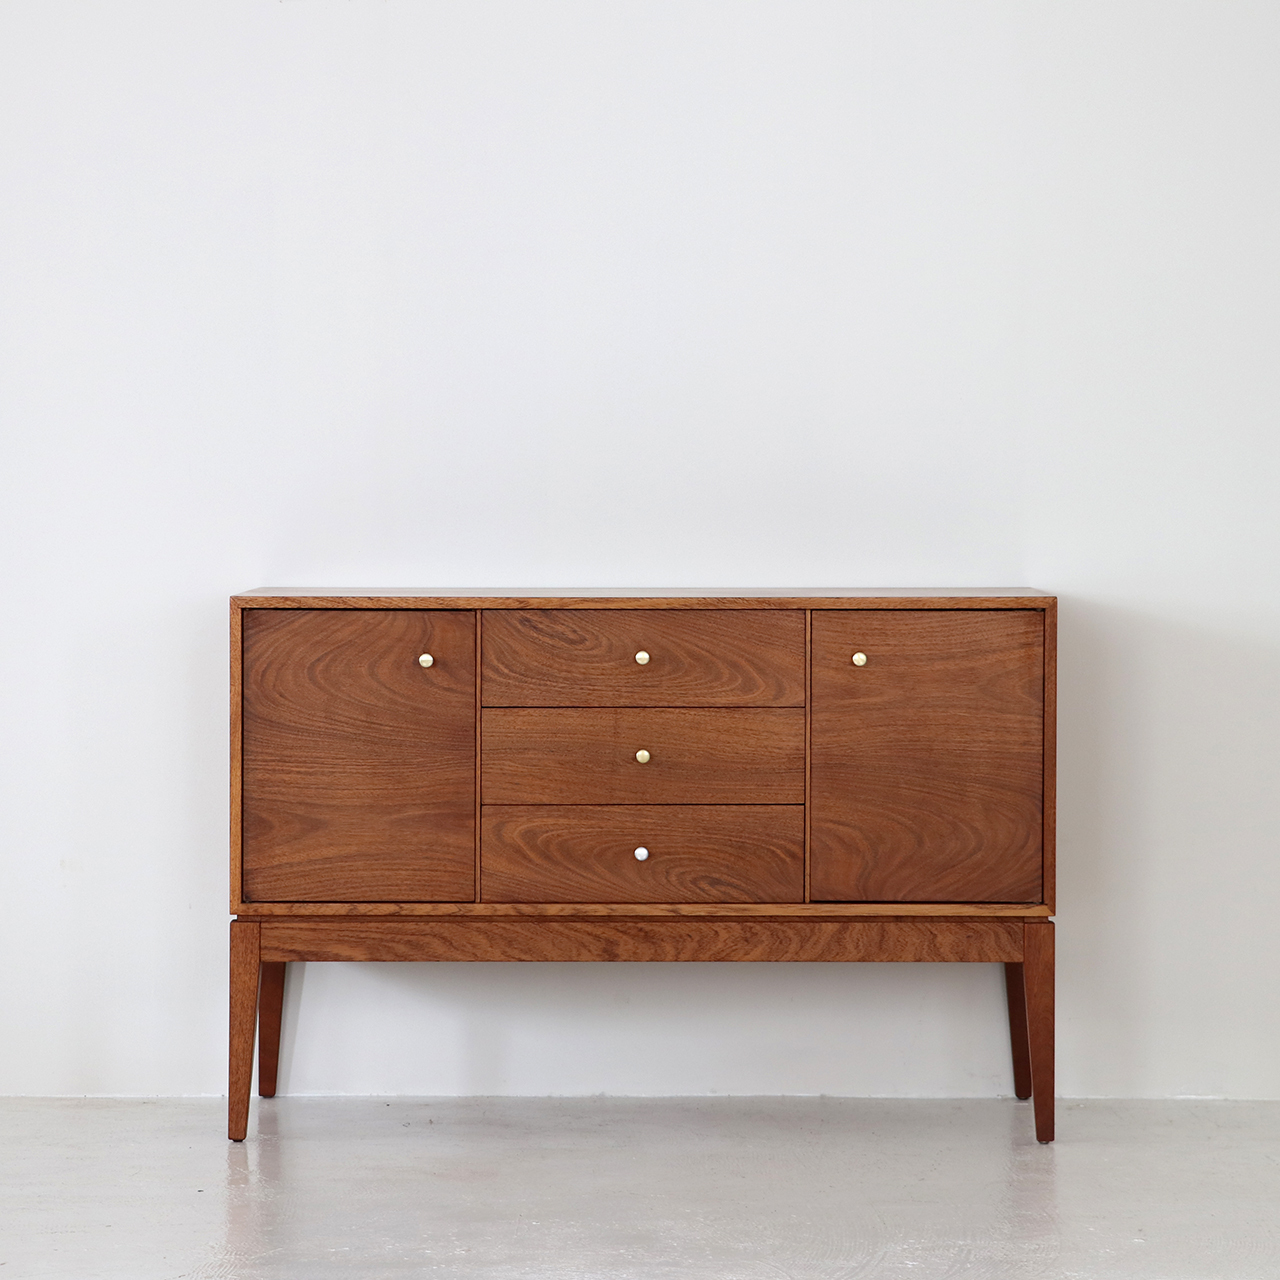 Sideboard / Uniflex / Peter Hayward